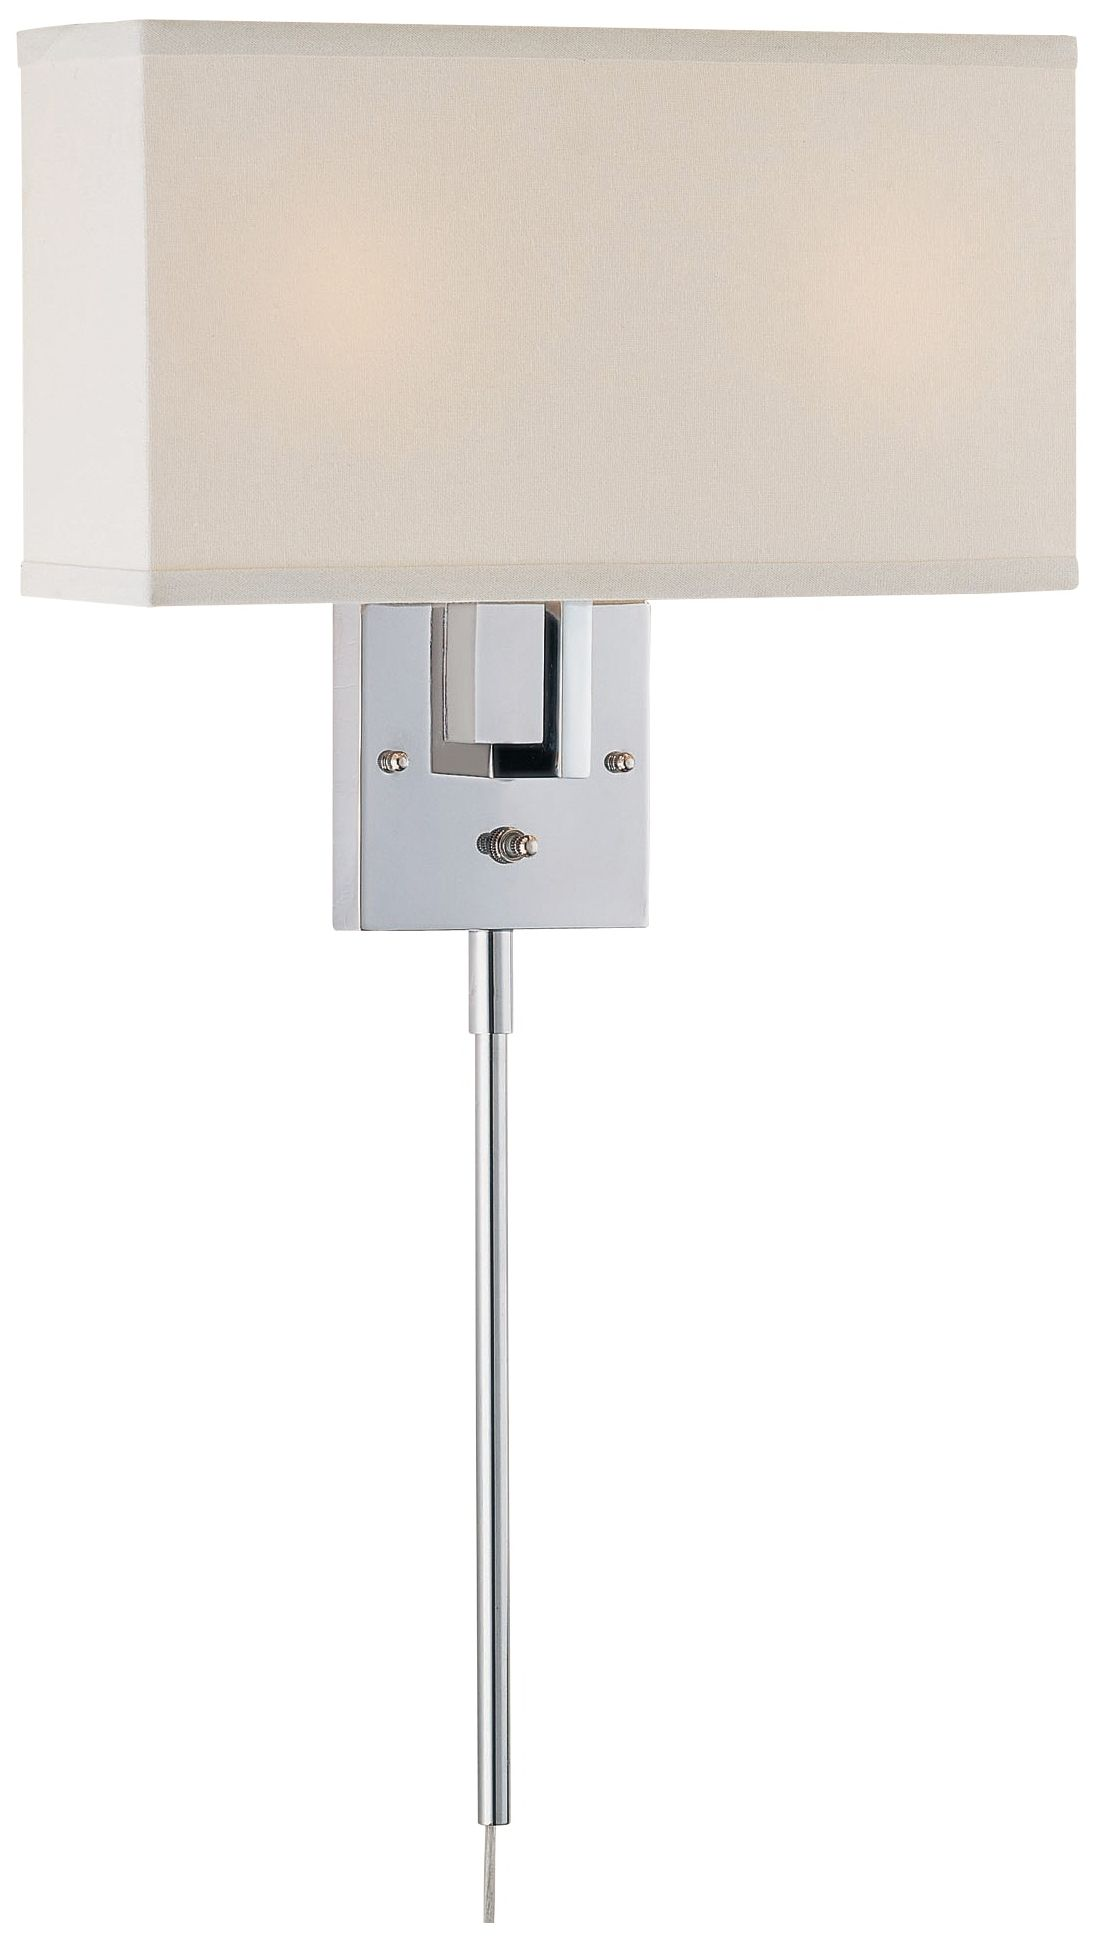 rimini plugin wall sconce